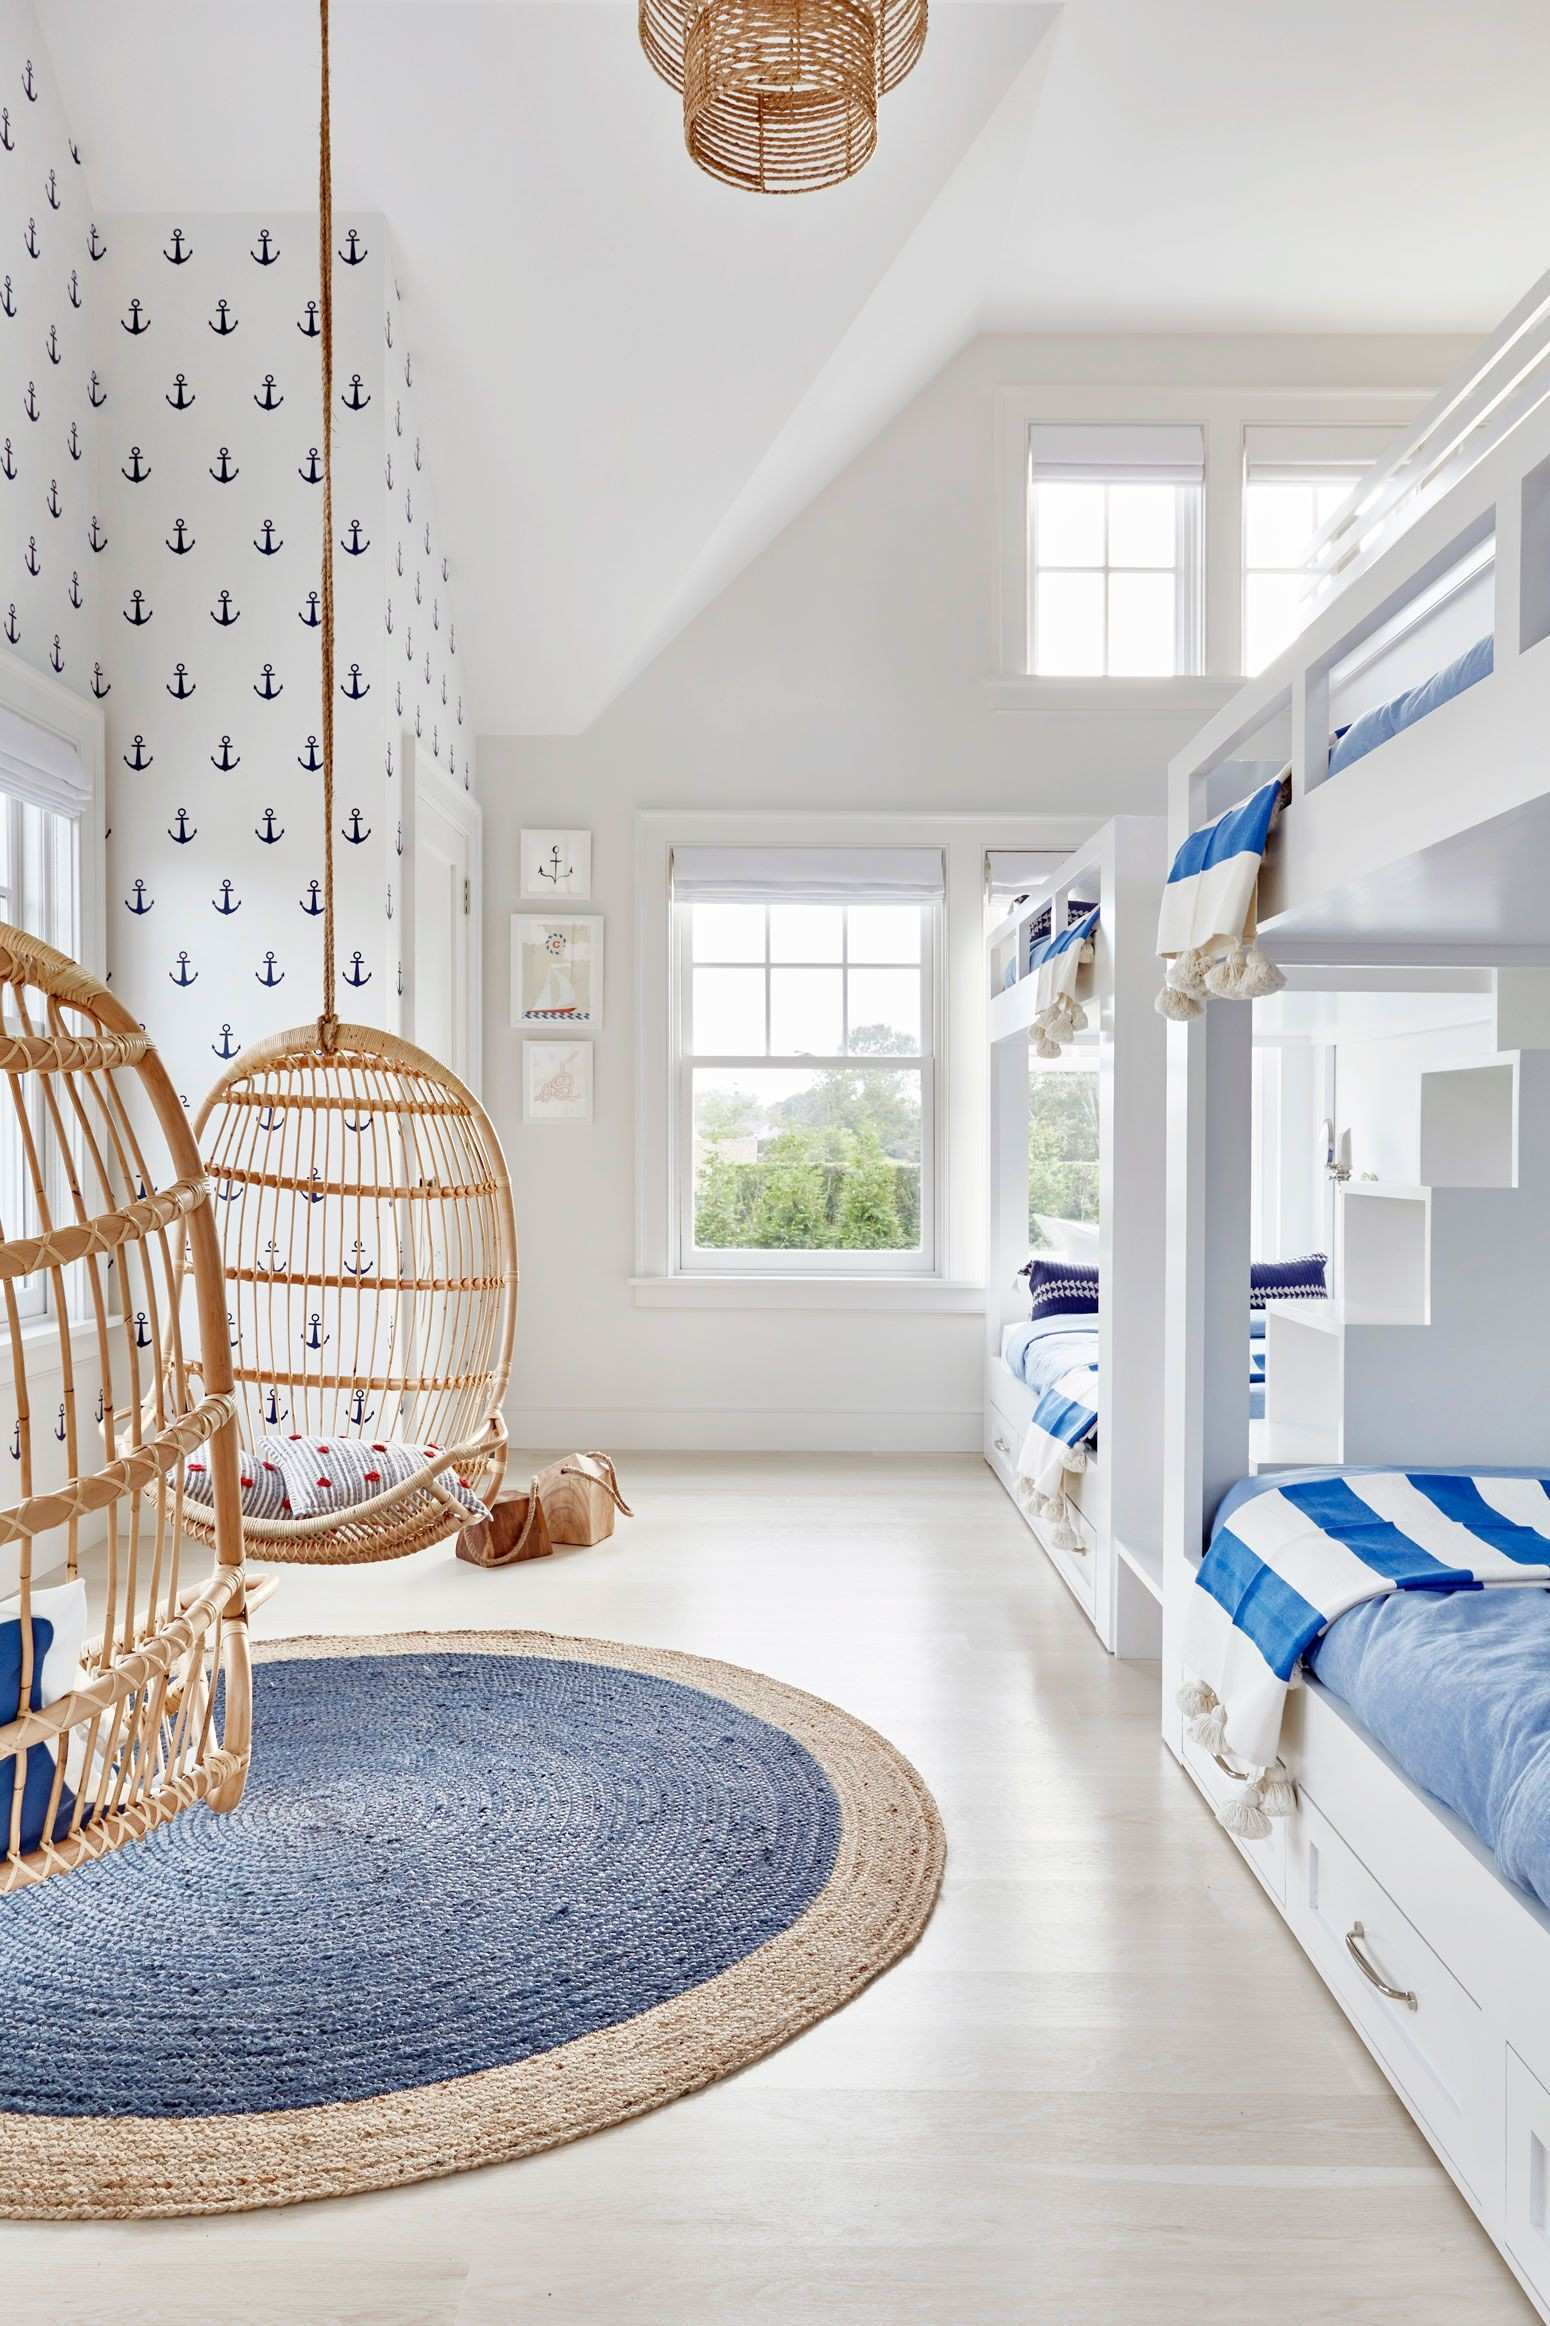 25 Easy Ways to Design and Decorate a Kids Room